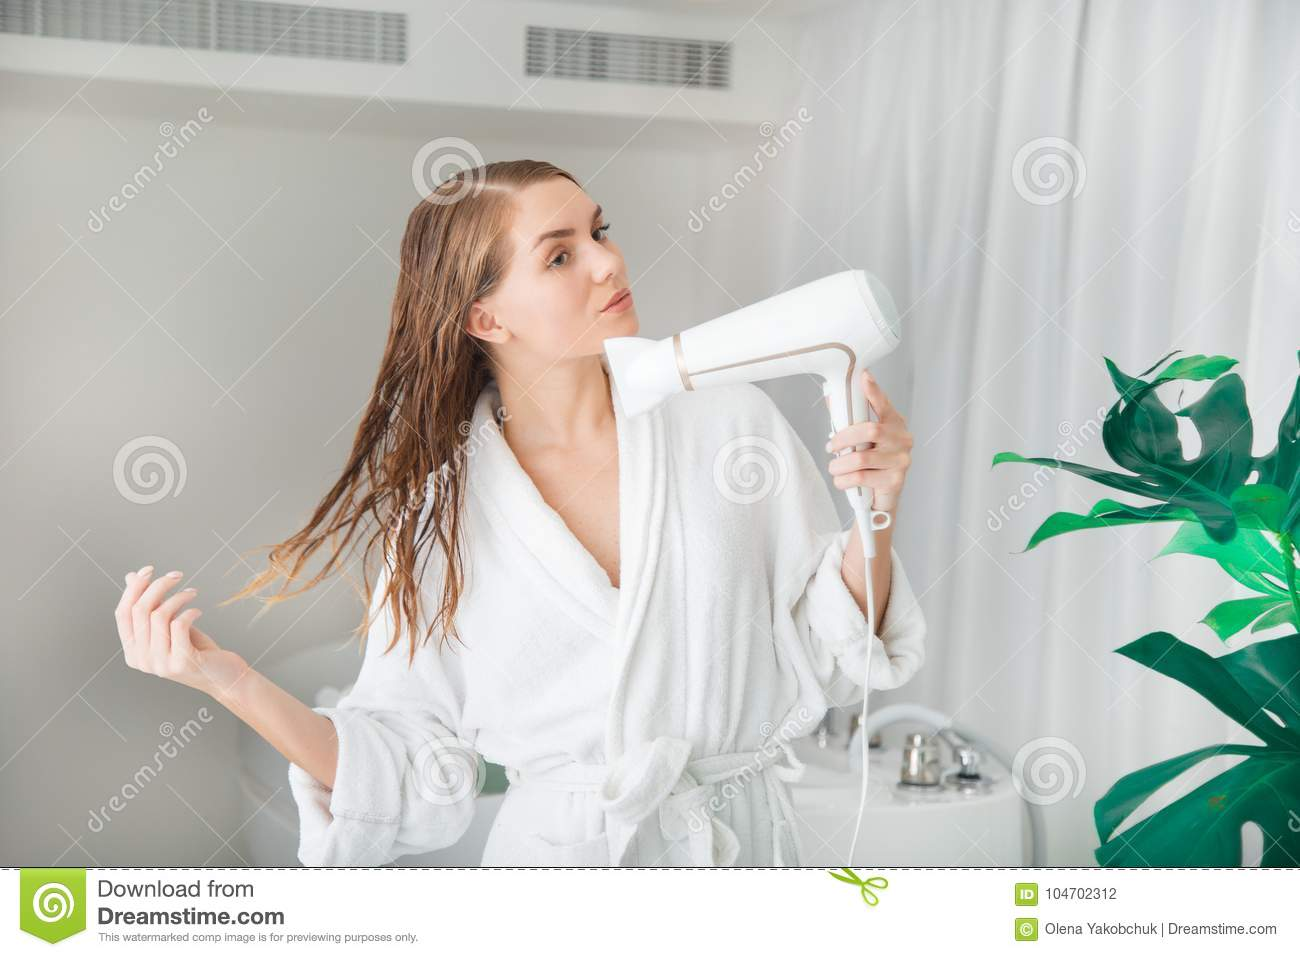 Portrait of confident young woman blow-drying her hair in bathroom. She is  standing in bathrobe b44260bcf